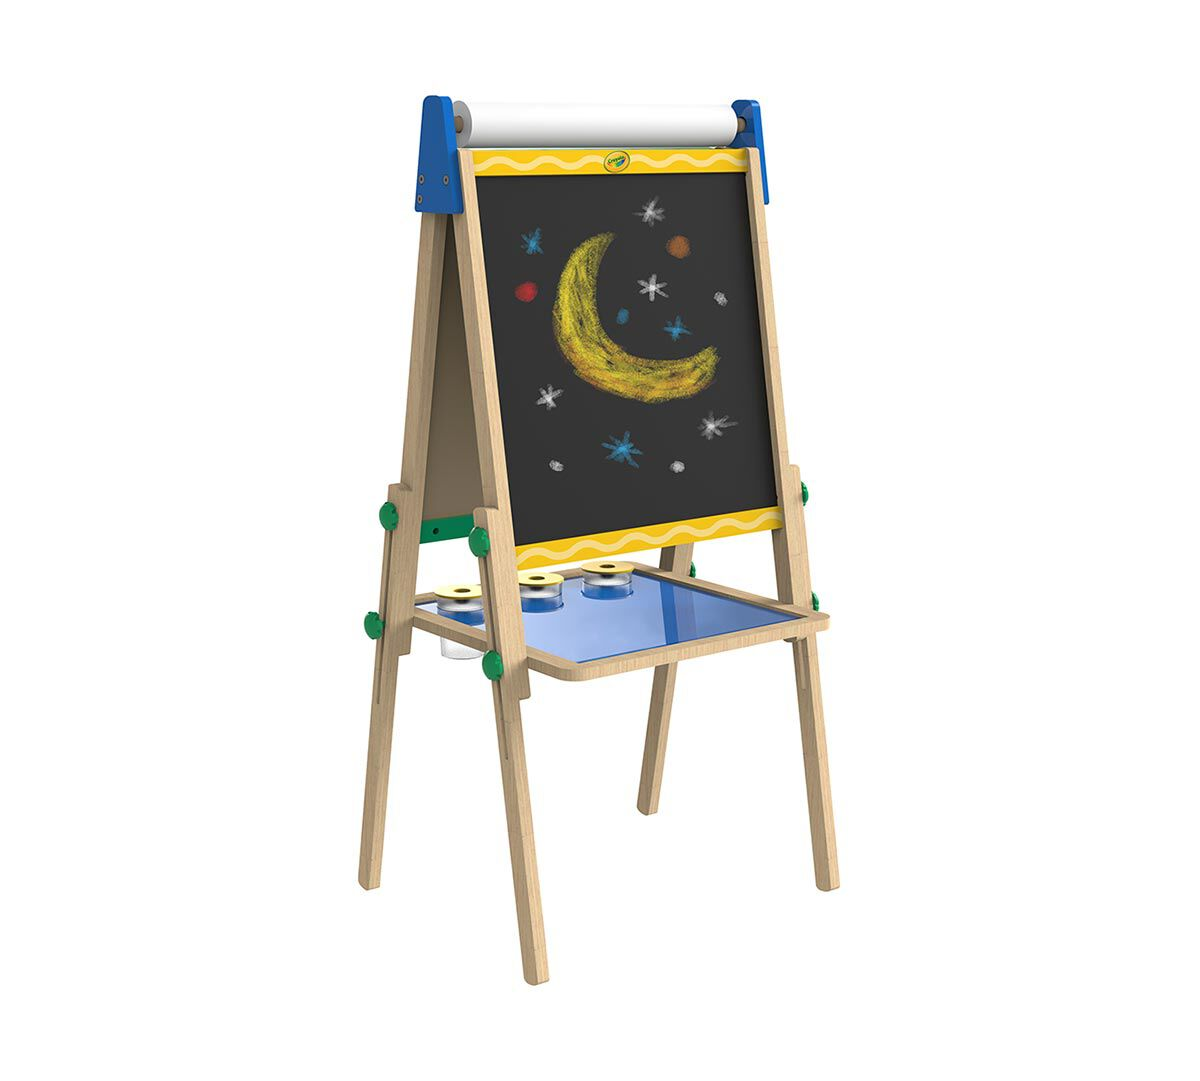 crayola kid s wooden easel dry erase board chalkboard gift for